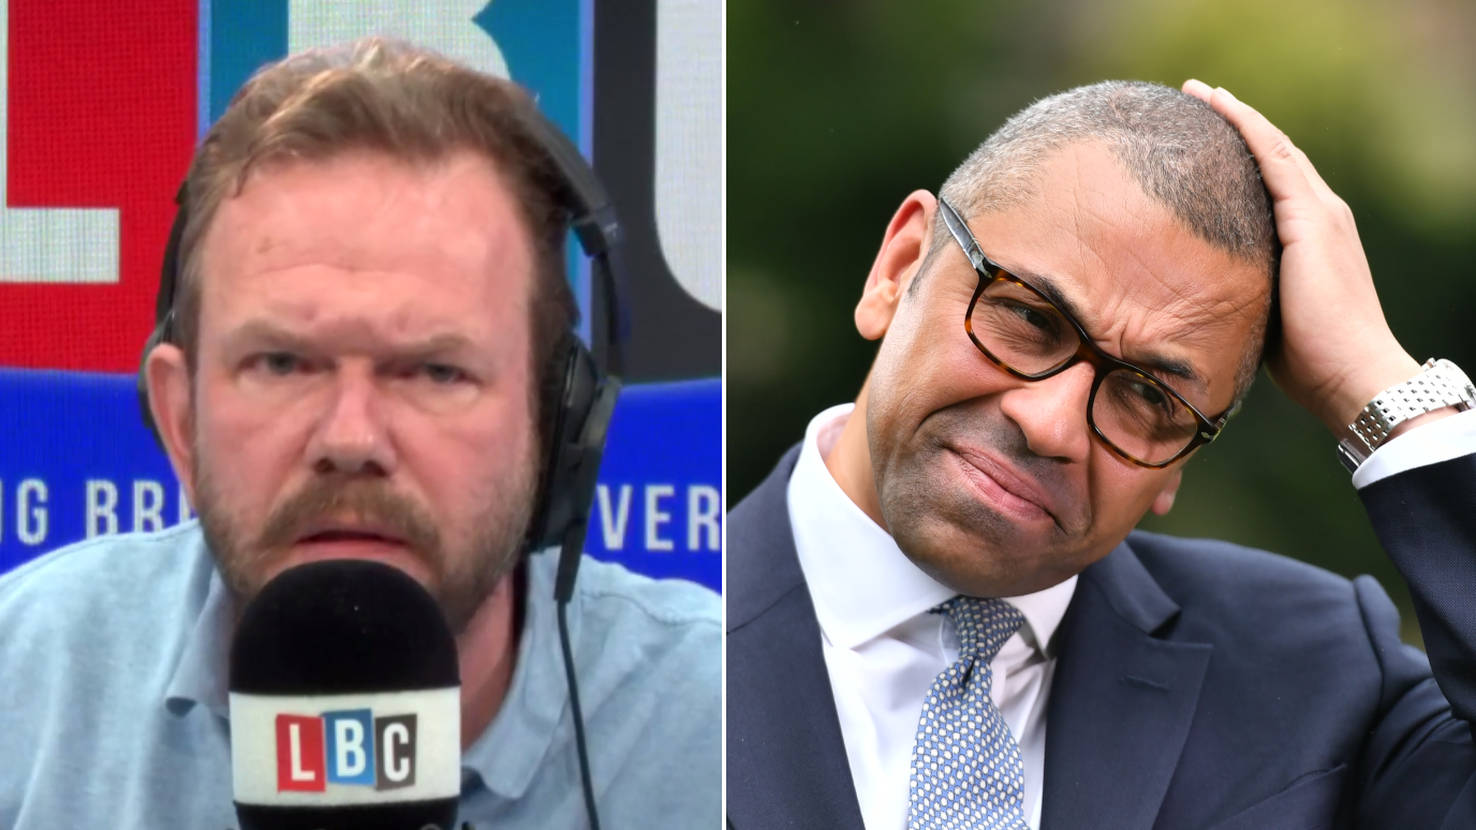 Listeners Labelled James O'Brien's Interview With James Cleverly The Best They've Heard